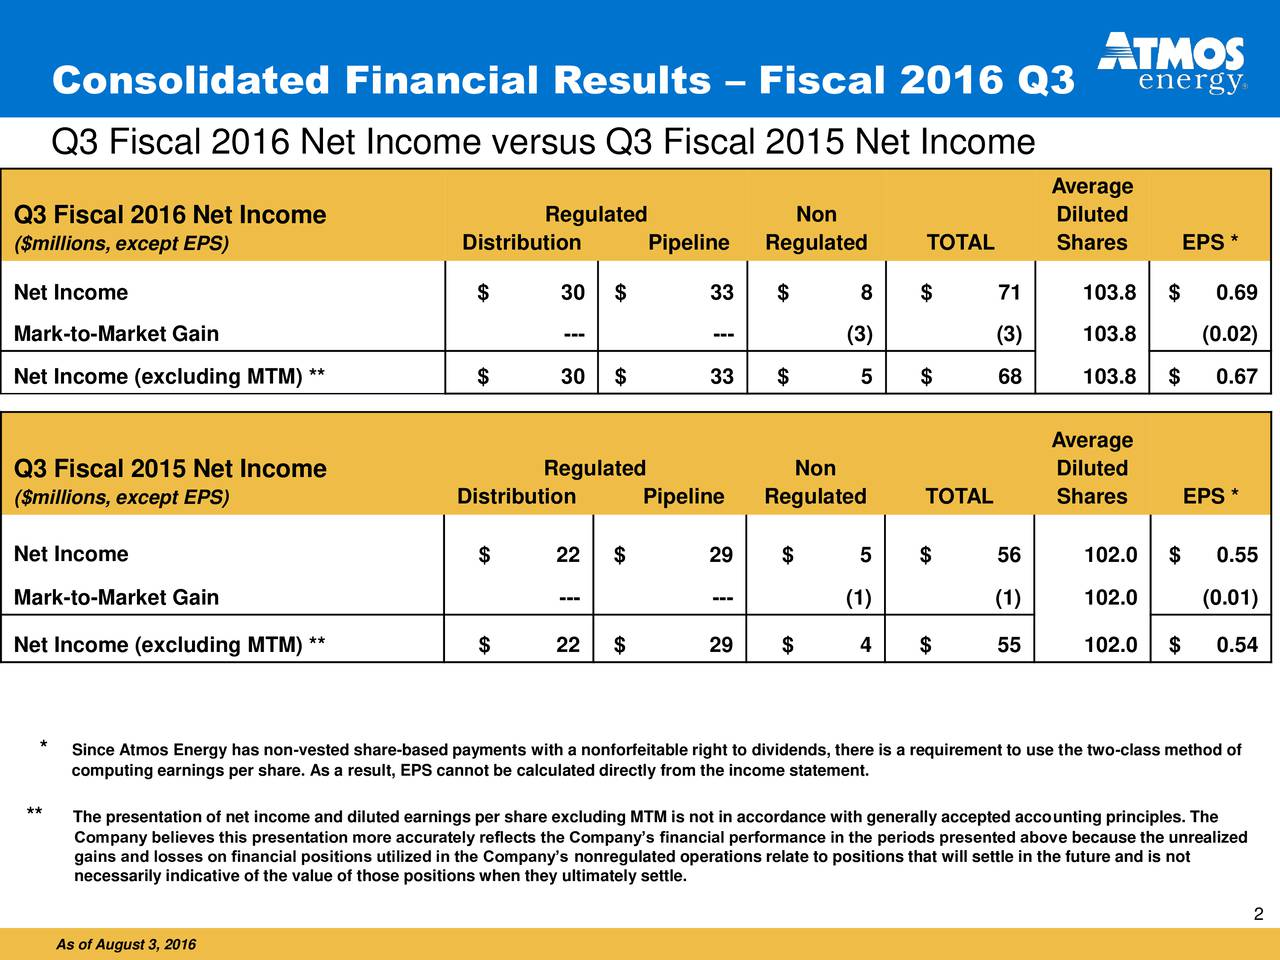 Q3 Fiscal 2016 Net Income versus Q3 Fiscal 2015 Net Income Average Q3 Fiscal 2016 Net Income Regulated Non Diluted ($millions, except EPS) Distribution Pipeline Regulated TOTAL Shares EPS * Net Income $ 30 $ 33 $ 8 $ 71 103.8 $ 0.69 Mark-to-Market Gain --- --- (3) (3) 103.8 (0.02) Net Income (excluding MTM) ** $ 30 $ 33 $ 5 $ 68 103.8 $ 0.67 Average Q3 Fiscal 2015 Net Income Regulated Non Diluted ($millions, except EPS) Distribution Pipeline Regulated TOTAL Shares EPS * Net Income $ 22 $ 29 $ 5 $ 56 102.0 $ 0.55 Mark-to-Market Gain --- --- (1) (1) 102.0 (0.01) Net Income (excluding MTM) ** $ 22 $ 29 $ 4 $ 55 102.0 $ 0.54 * Since Atmos Energy has non-vested share-based payments with a nonforfeitable right to dividends, there is a requirement to use the two-class method of computing earnings per share. As a result, EPS cannot be calculated directly from the income statement. ** Company believes this presentation more accurately reflects the Companys financial performance in the periods presented above because the unrealized gains and losses on financial positions utilized in the Companys nonregulated operations relate to positions that will settle in the future and is not necessarily indicative of the value of those positions when they ultimately settle. 2